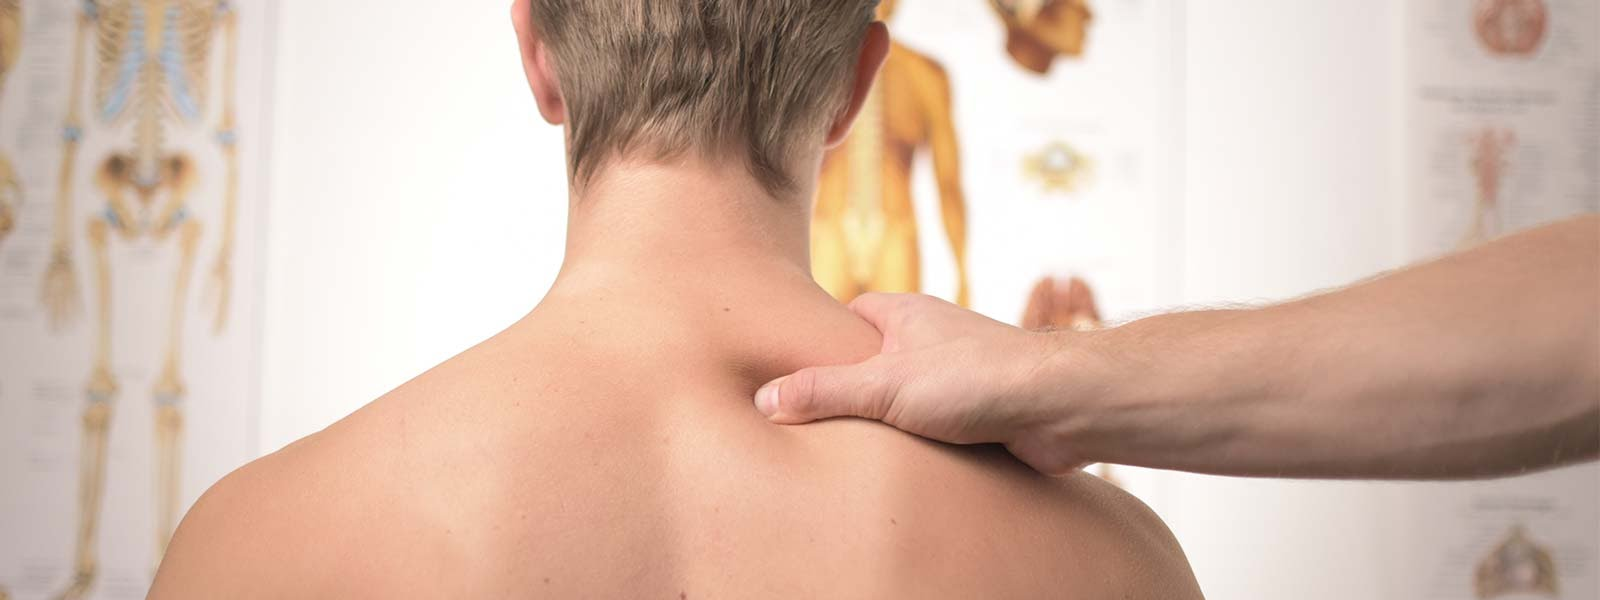 a man having his back checked by a chiropractor